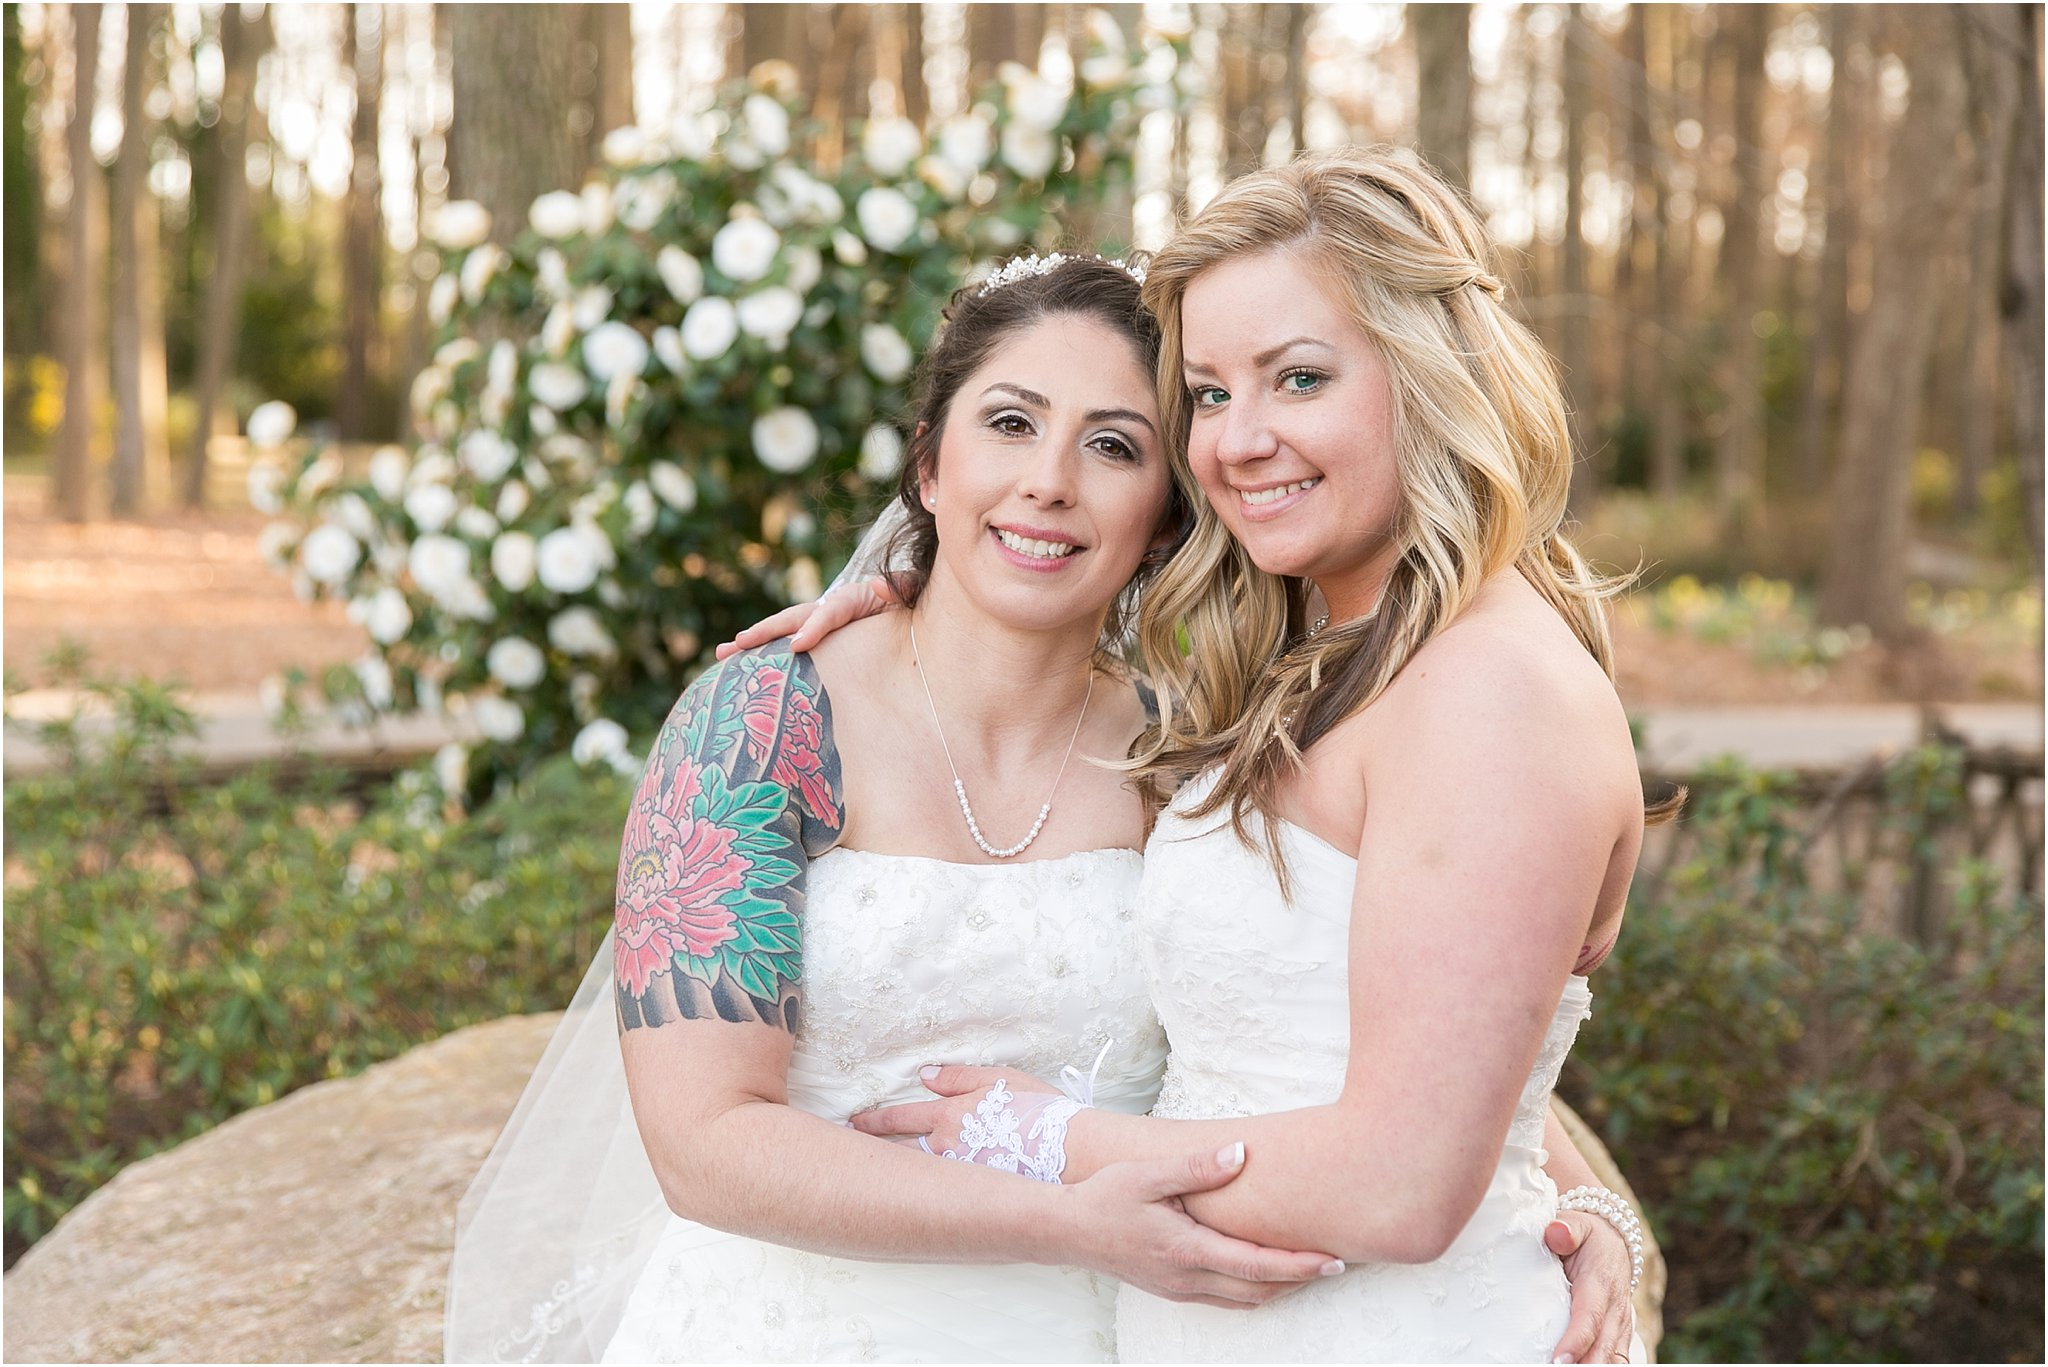 jessica_ryan_photography_redwingpark_wedding_virginia_beach_hampton_roads_1246